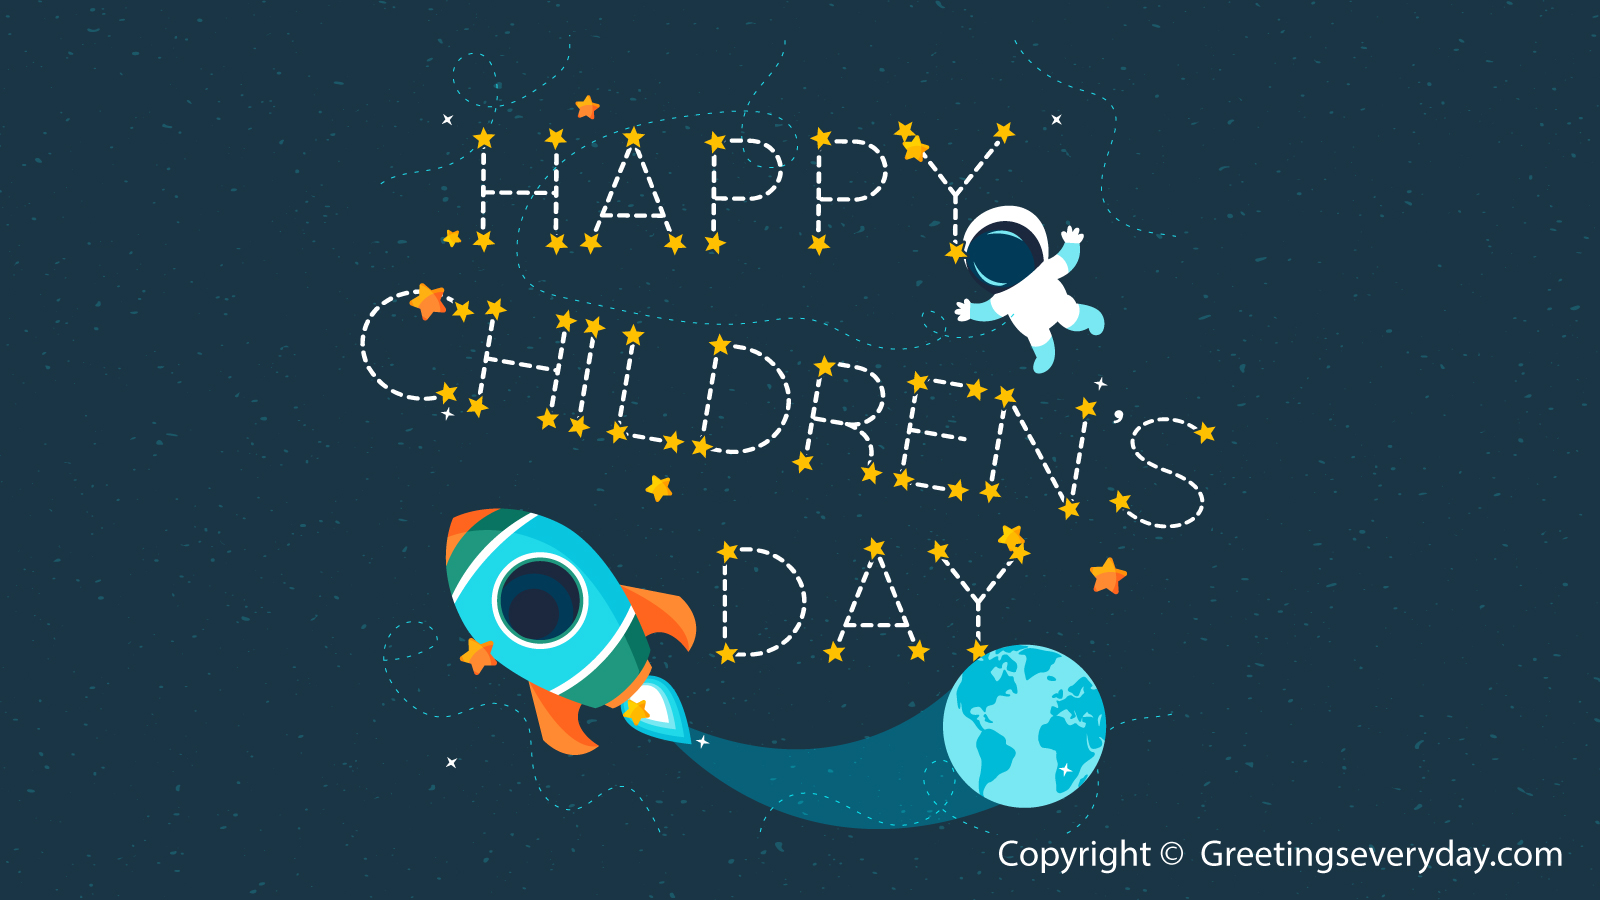 Children Day Image